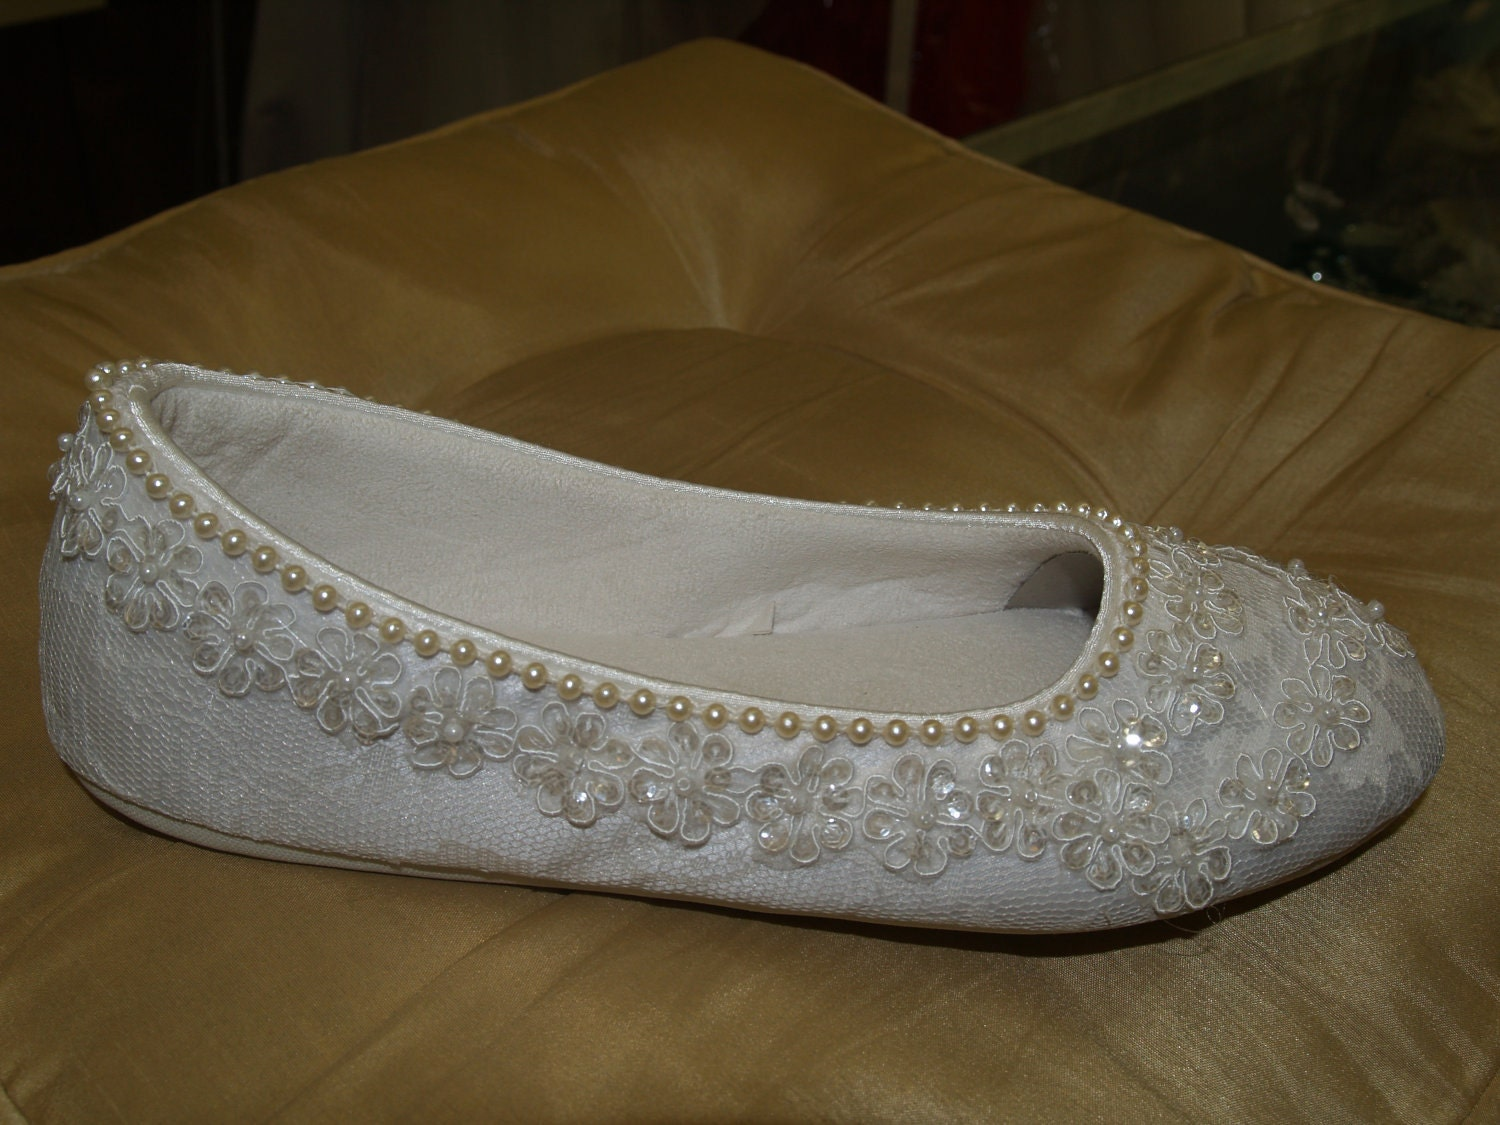 Wedding Ivory Flats Vegan Shoes Embellished with hand sewn pearls and ivory